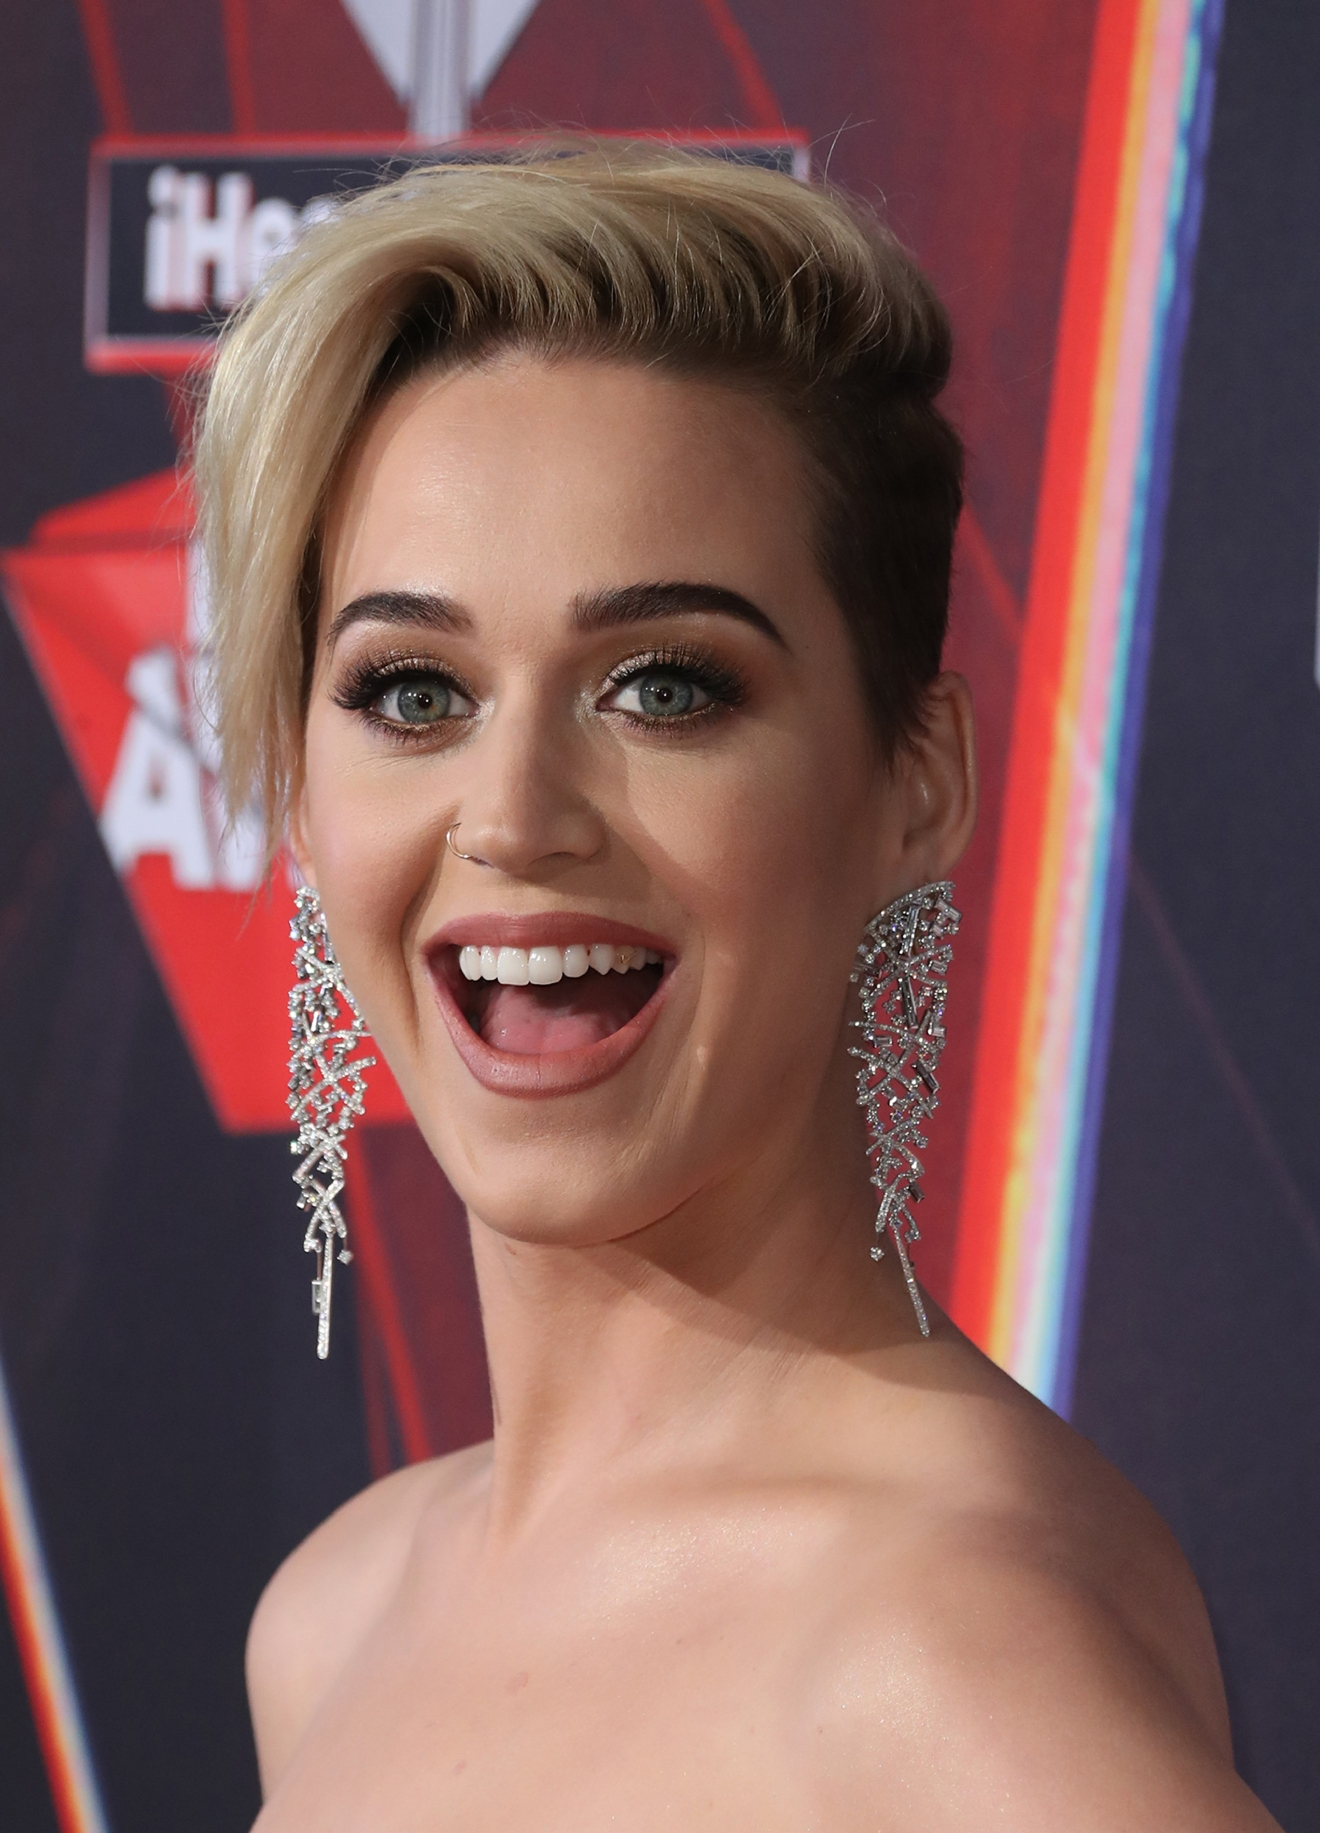 2017 iHeartRadio Music Awards  Featuring: Katy Perry Where: Los Angeles, California, United States When: 06 Mar 2017 Credit: FayesVision/WENN.com